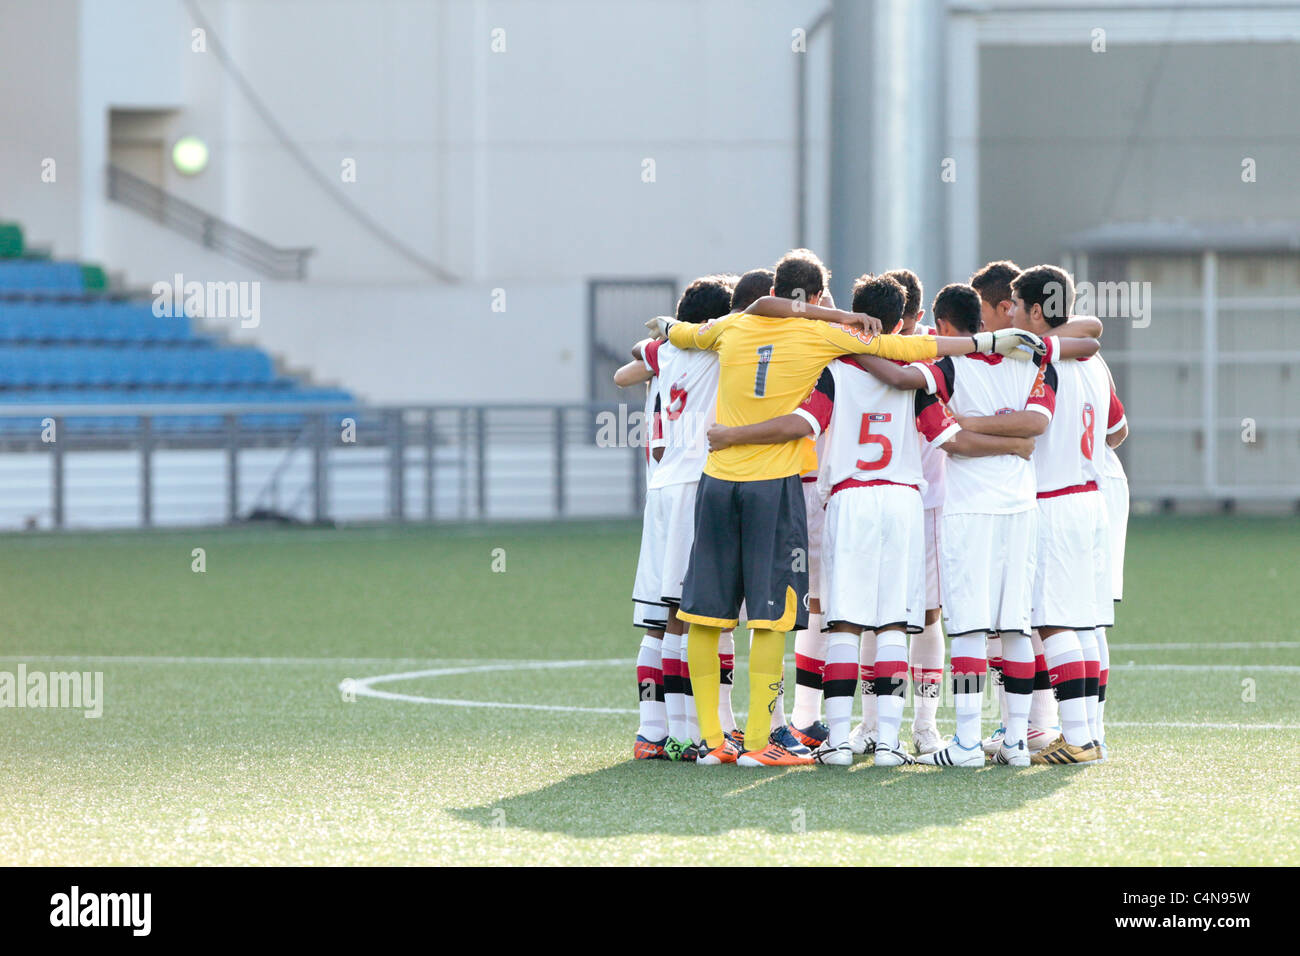 CR Flamengo U15 players huddle before their group match of the 23rd Canon Lion City Cup. - Stock Image